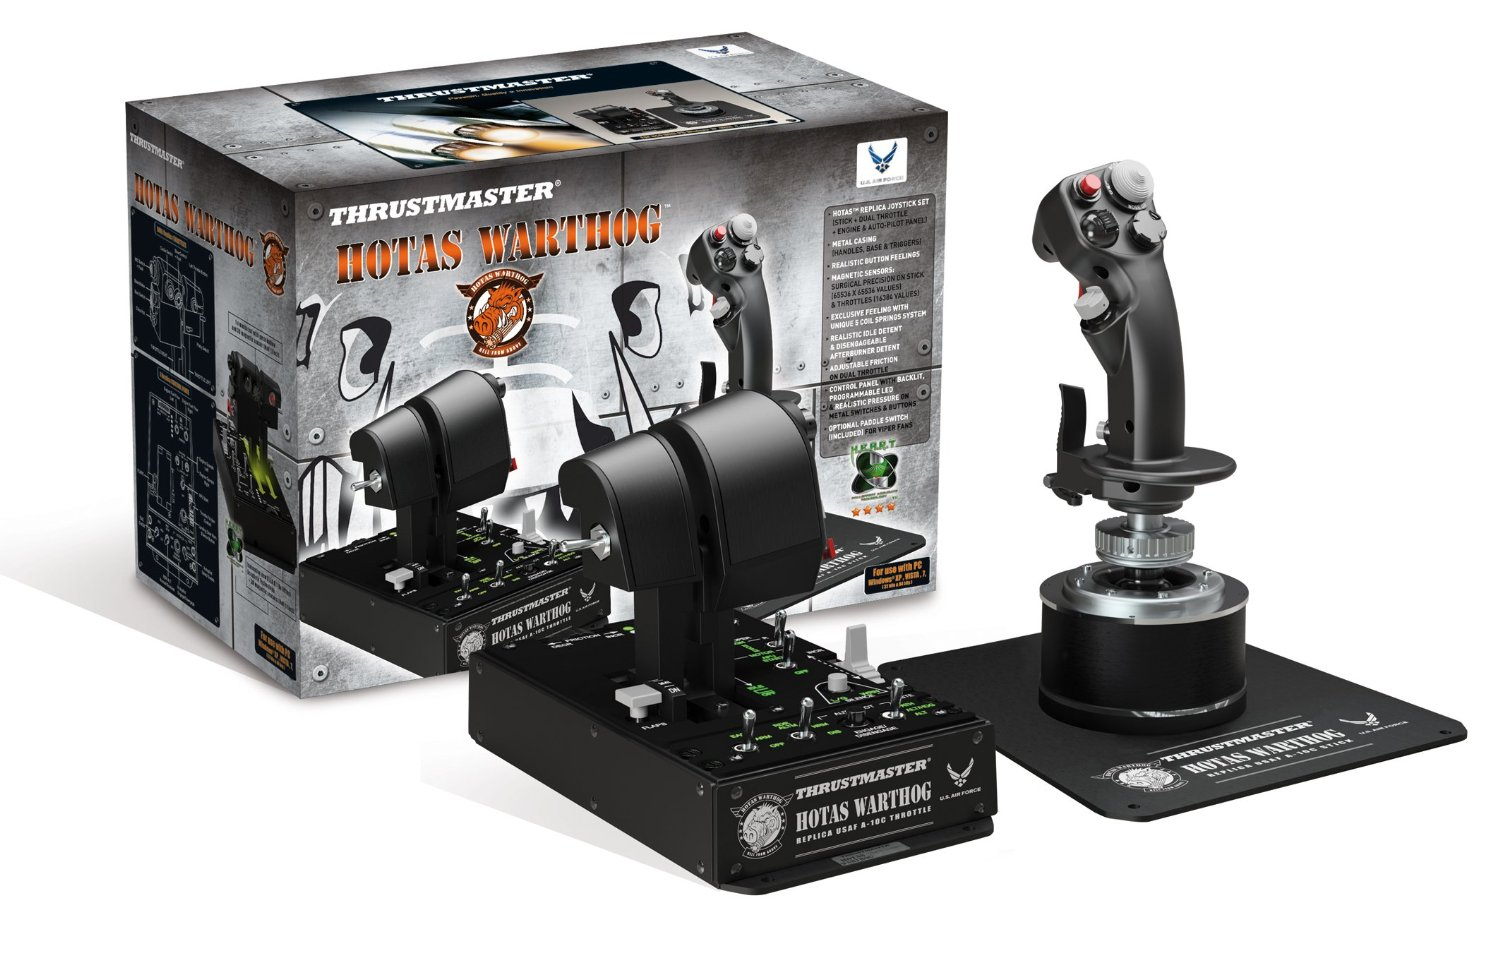 thrustmaster hotas warthog test prix et fiche technique. Black Bedroom Furniture Sets. Home Design Ideas